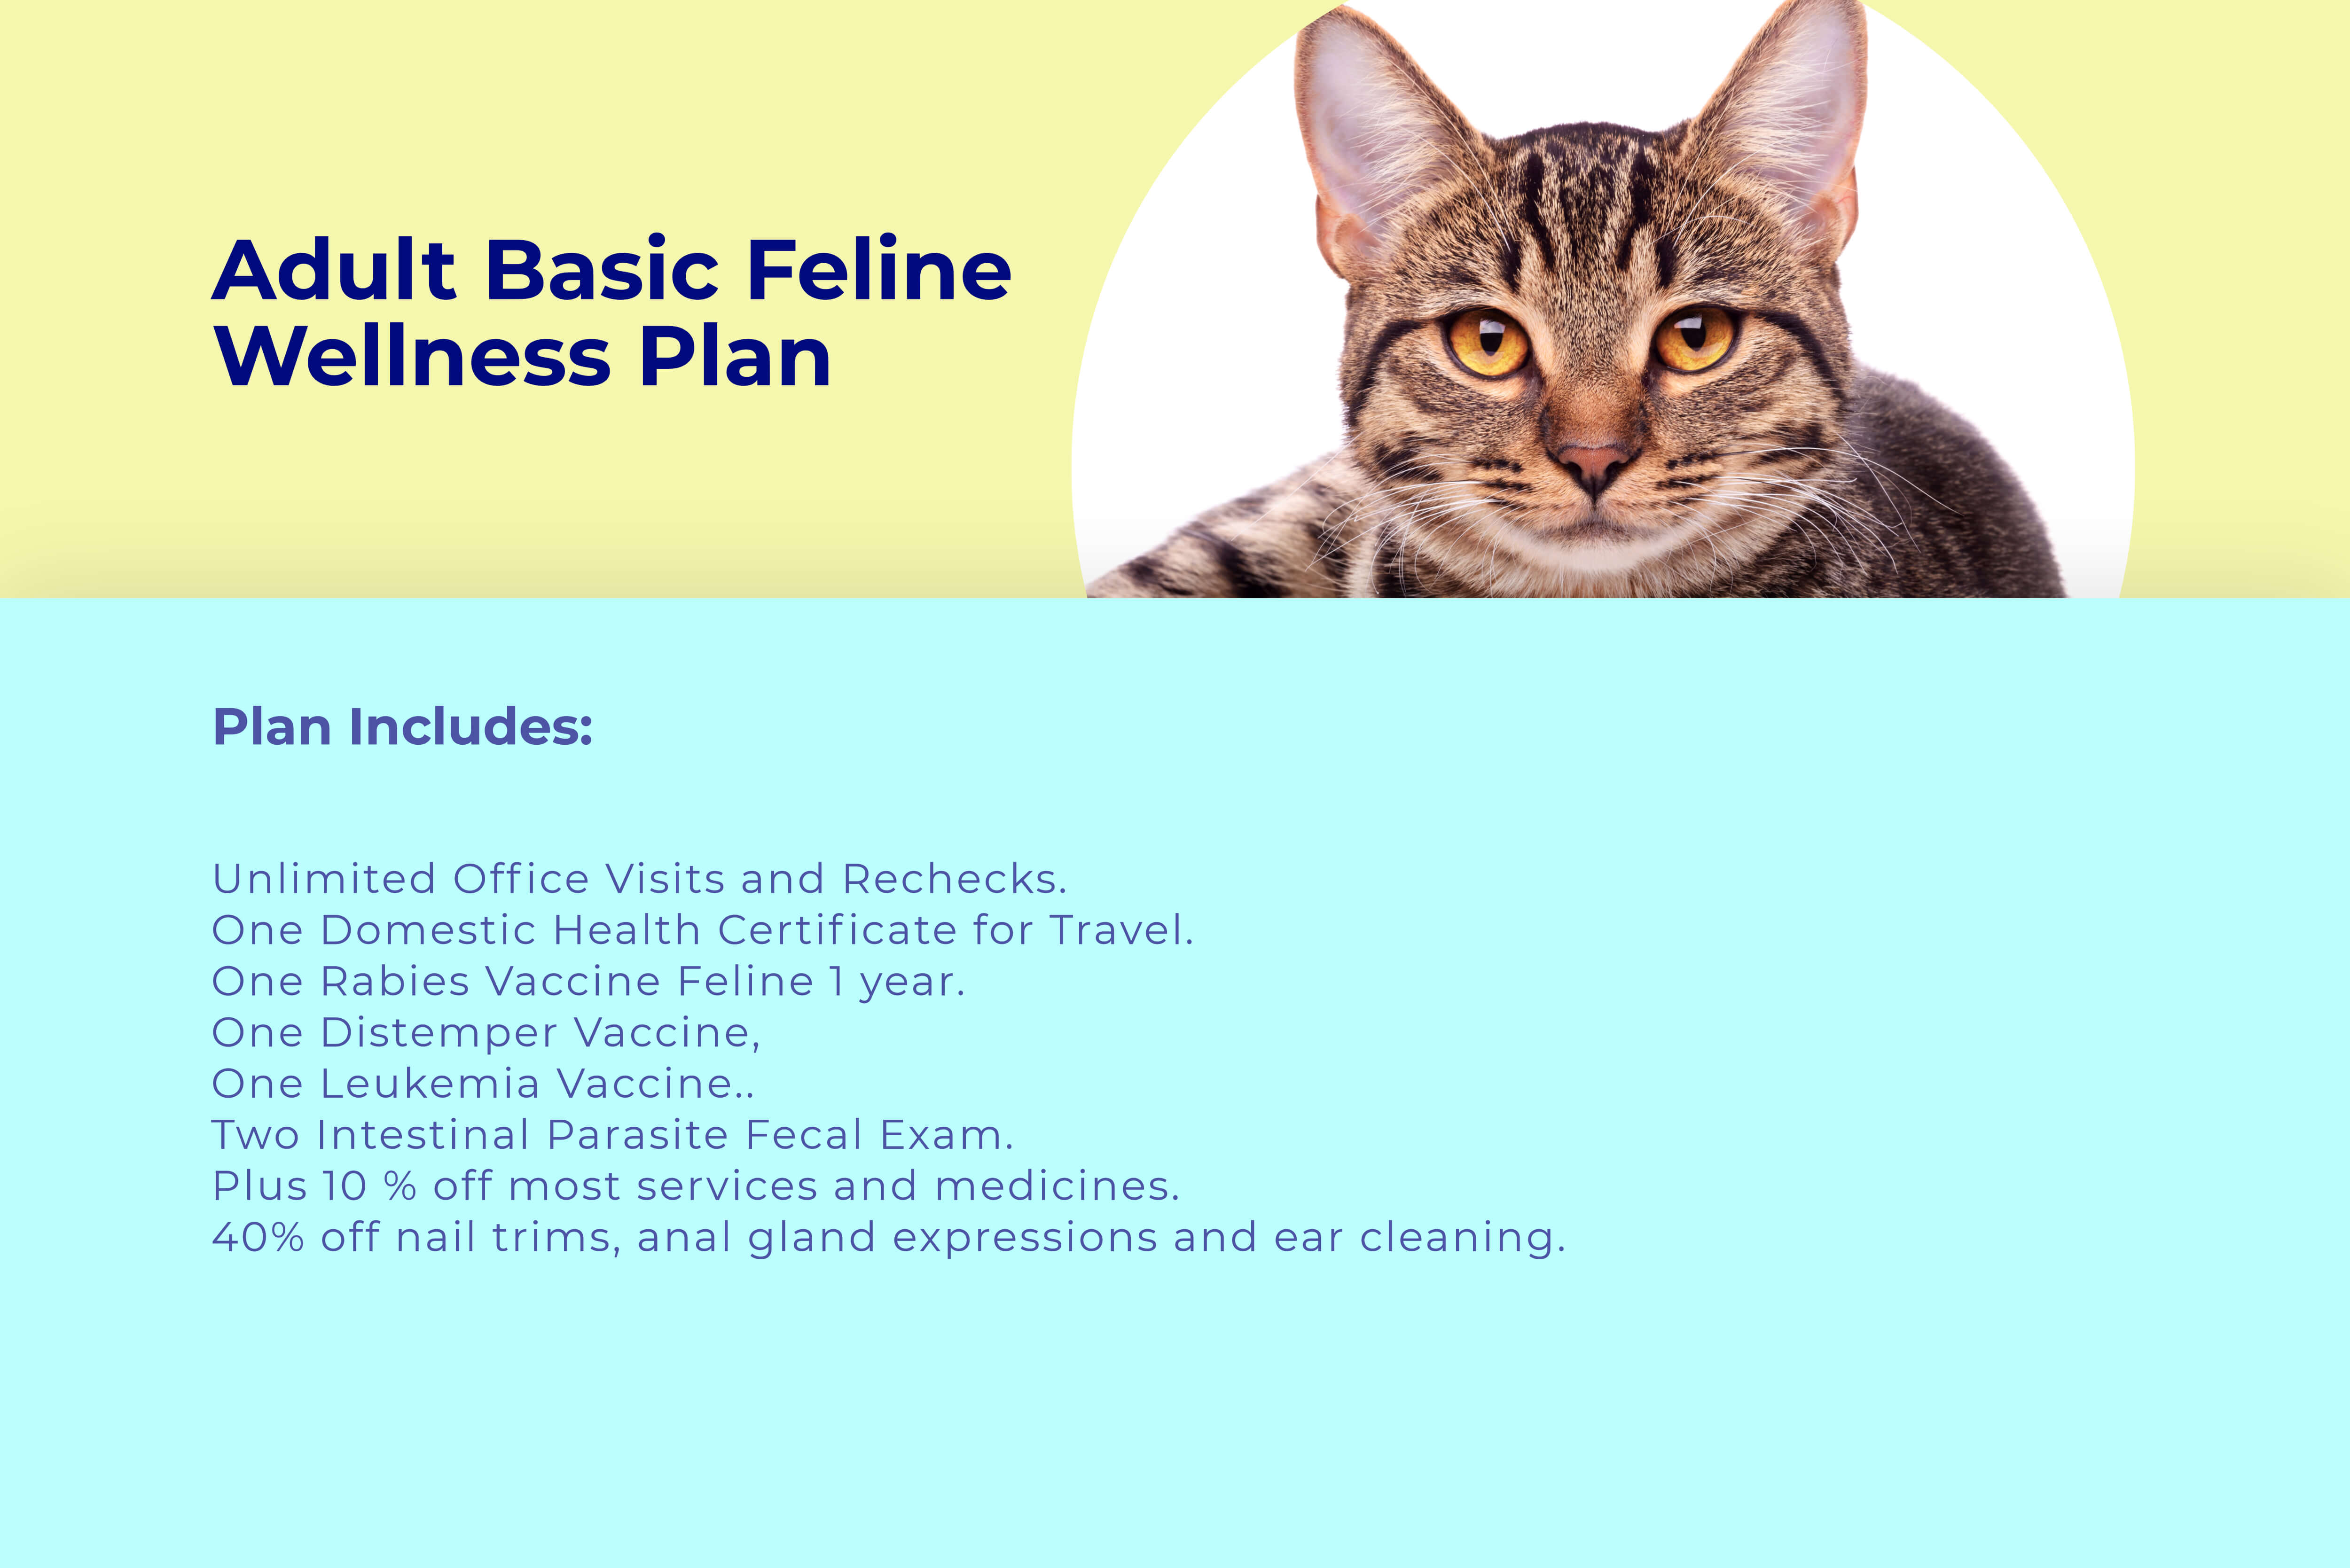 Adult cat basic wellness plan at animal wellness clinic